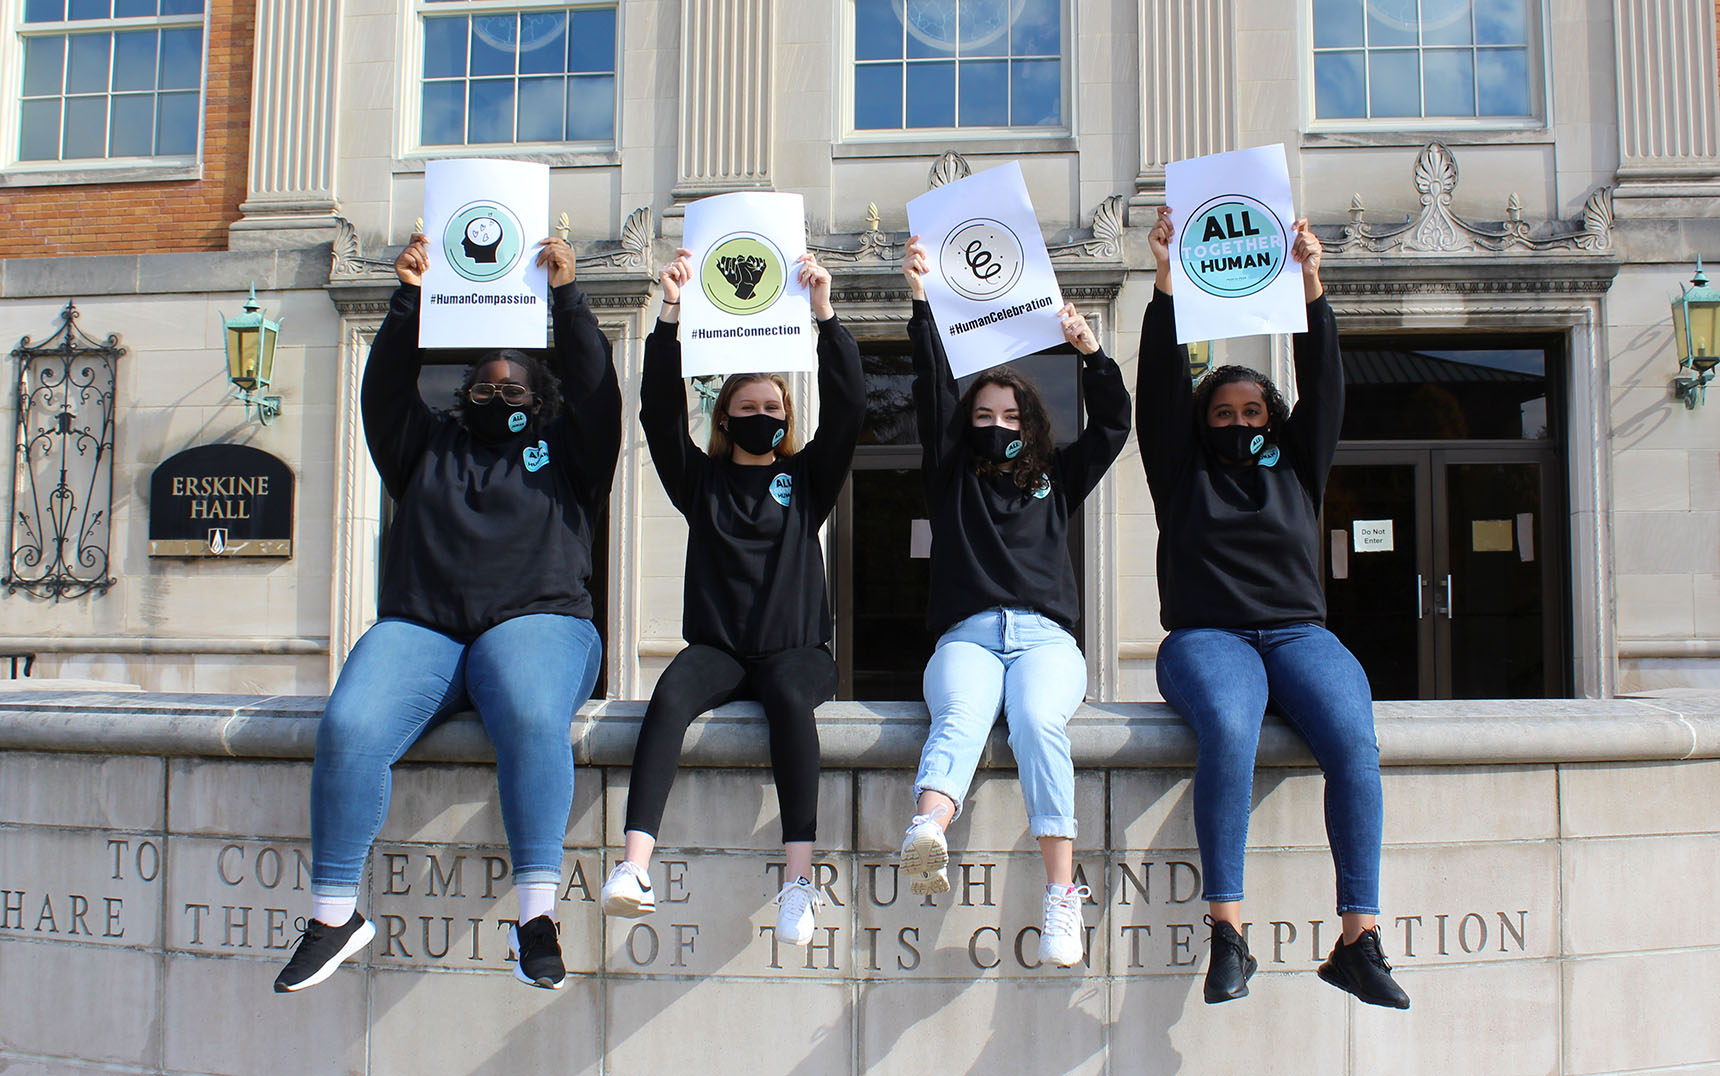 ODU's Student PR Team Sits in Front of Erskine Hall